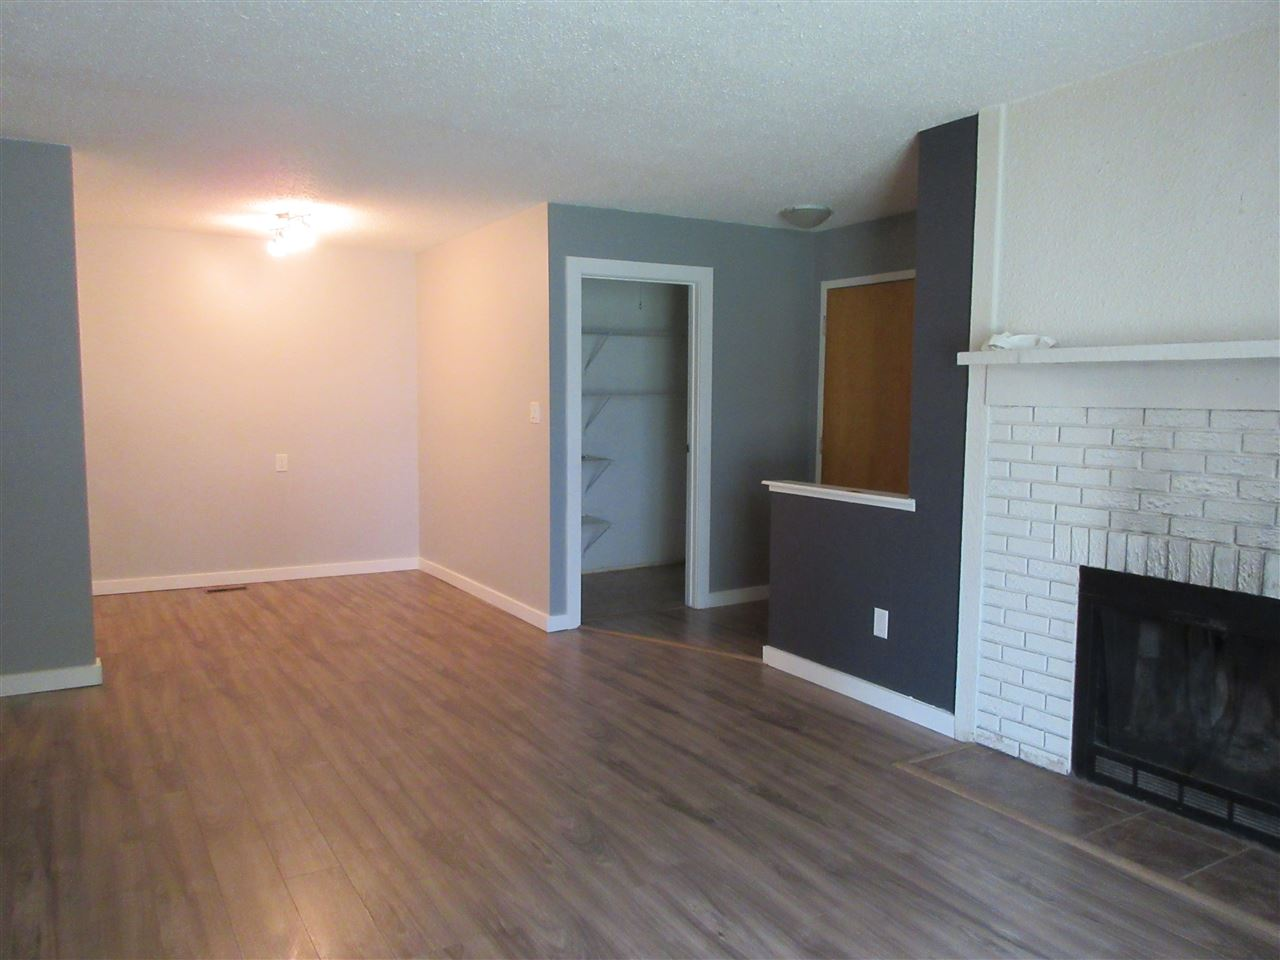 Photo 10: 103 51 AKINS Drive: St. Albert Condo for sale : MLS® # E4060963